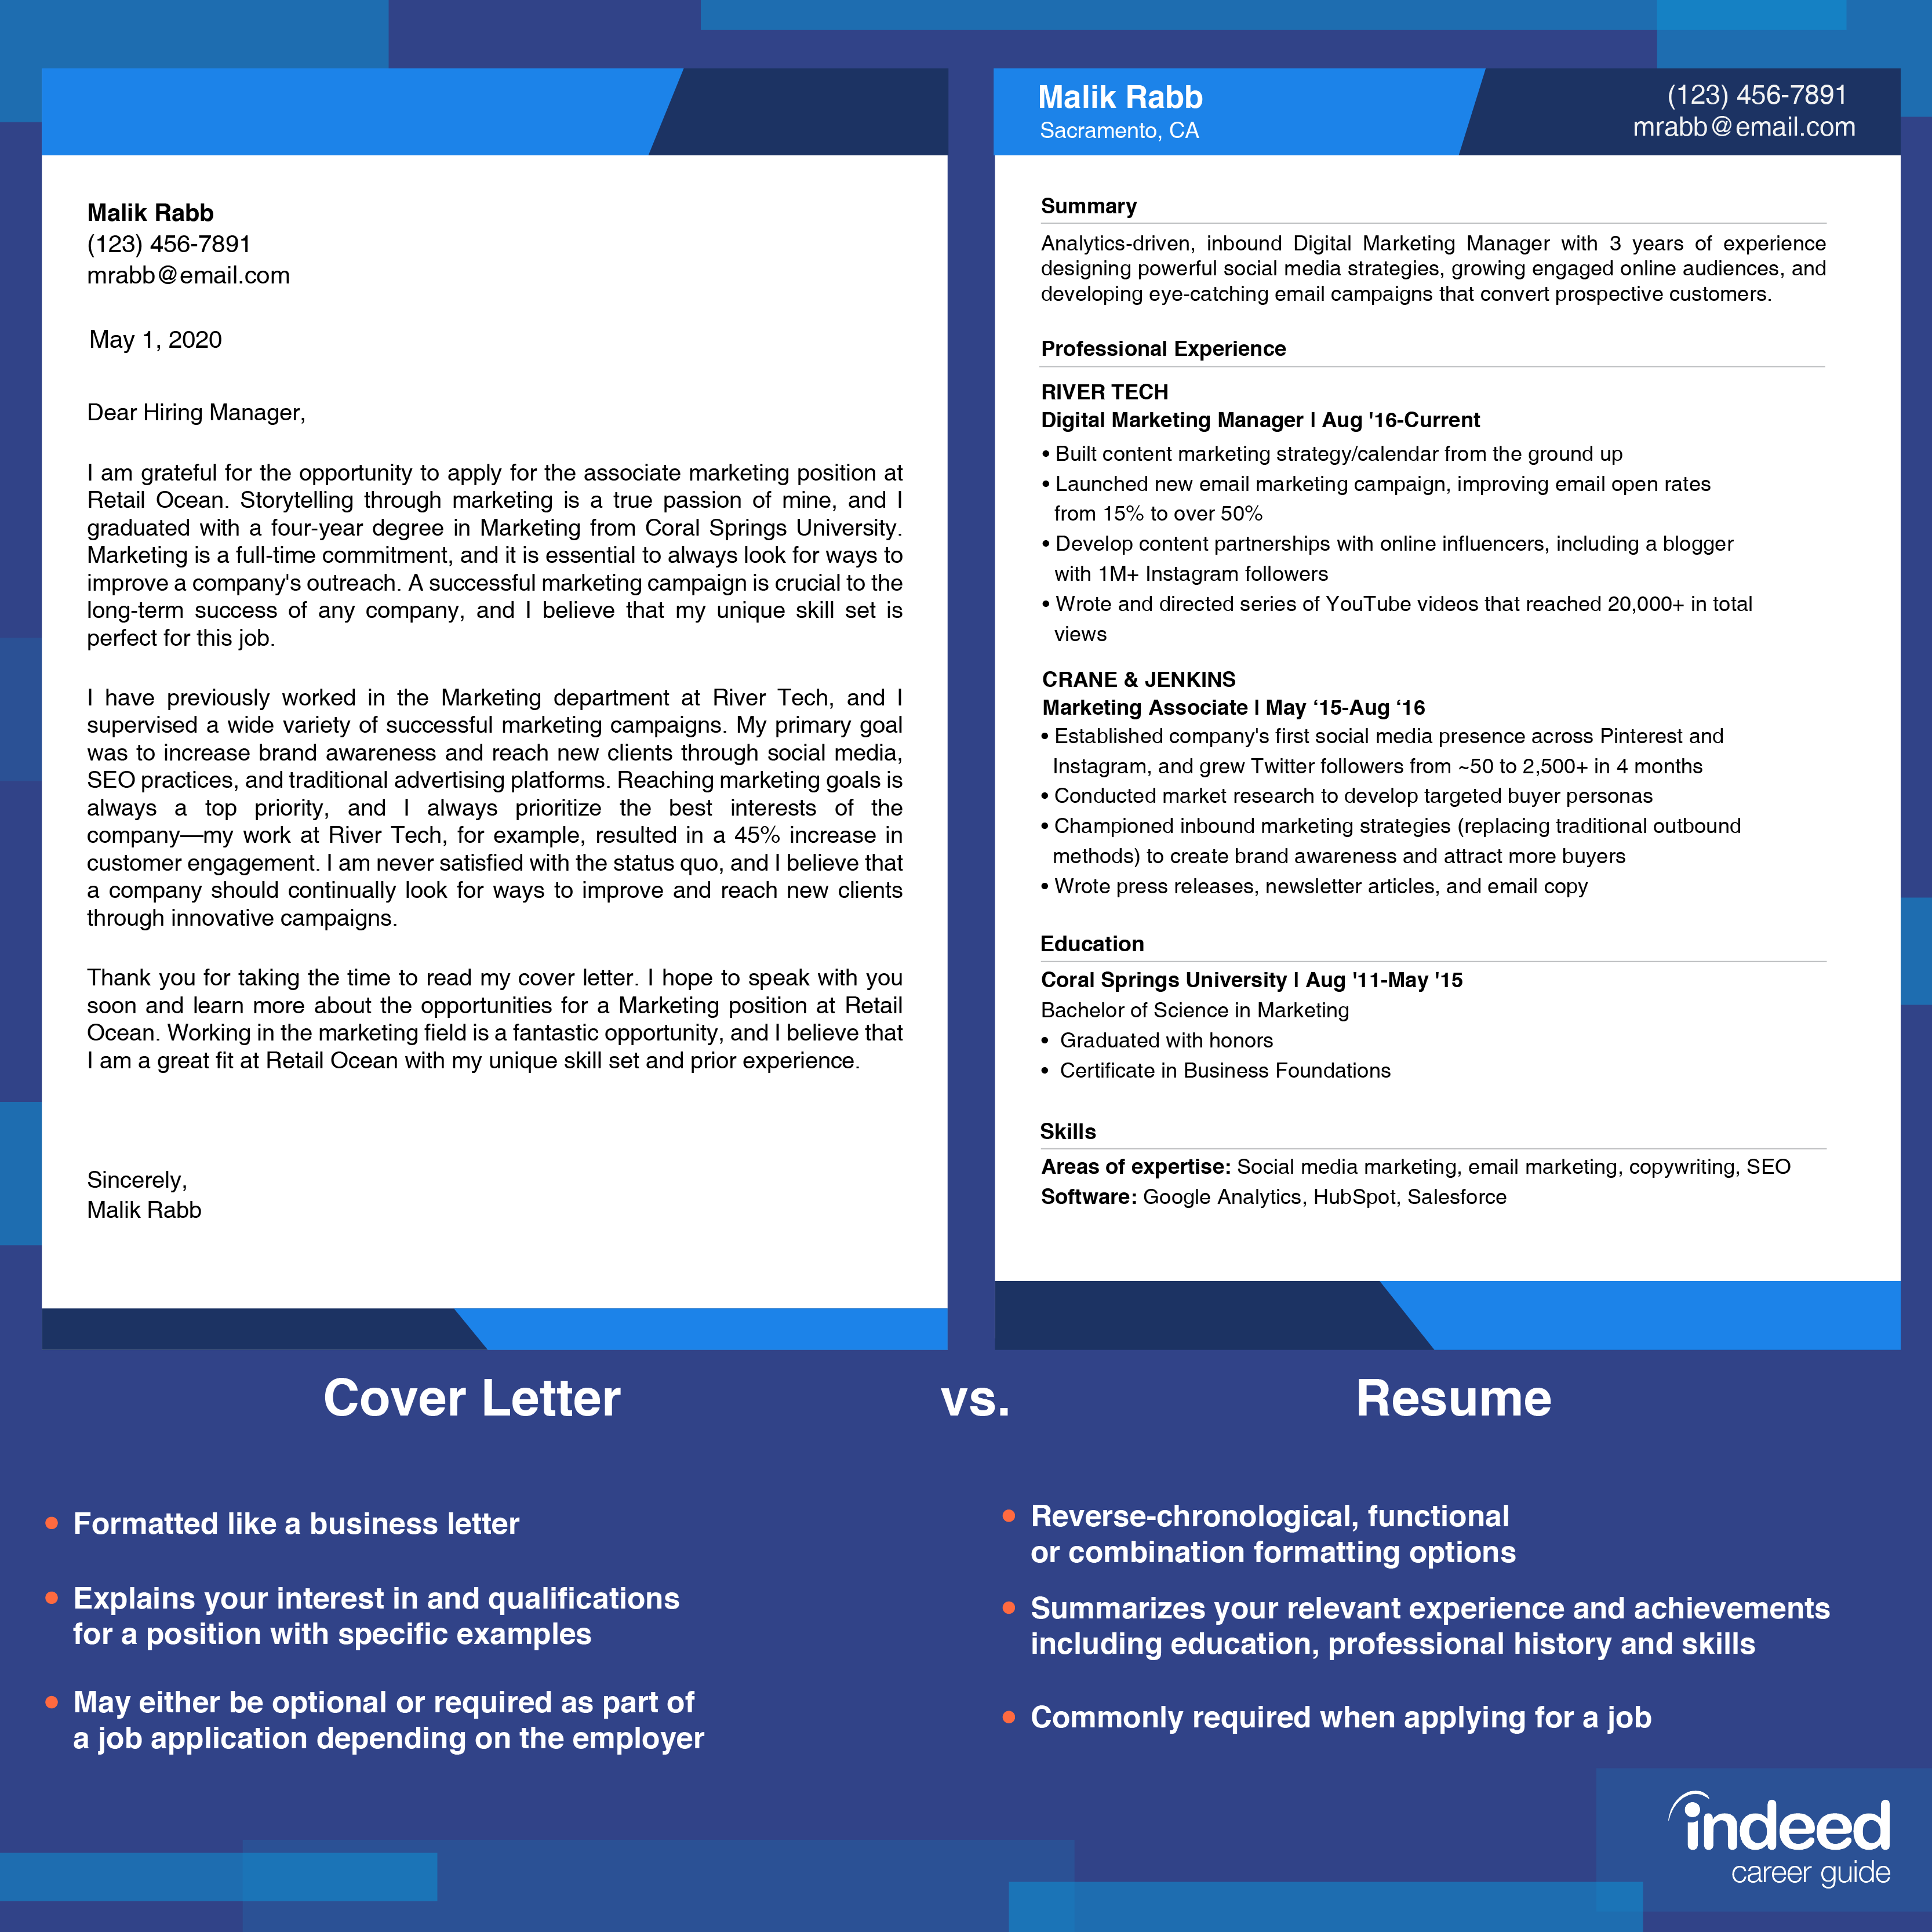 Resume vs. Cover Letter: What\'s the Difference? | Indeed.com